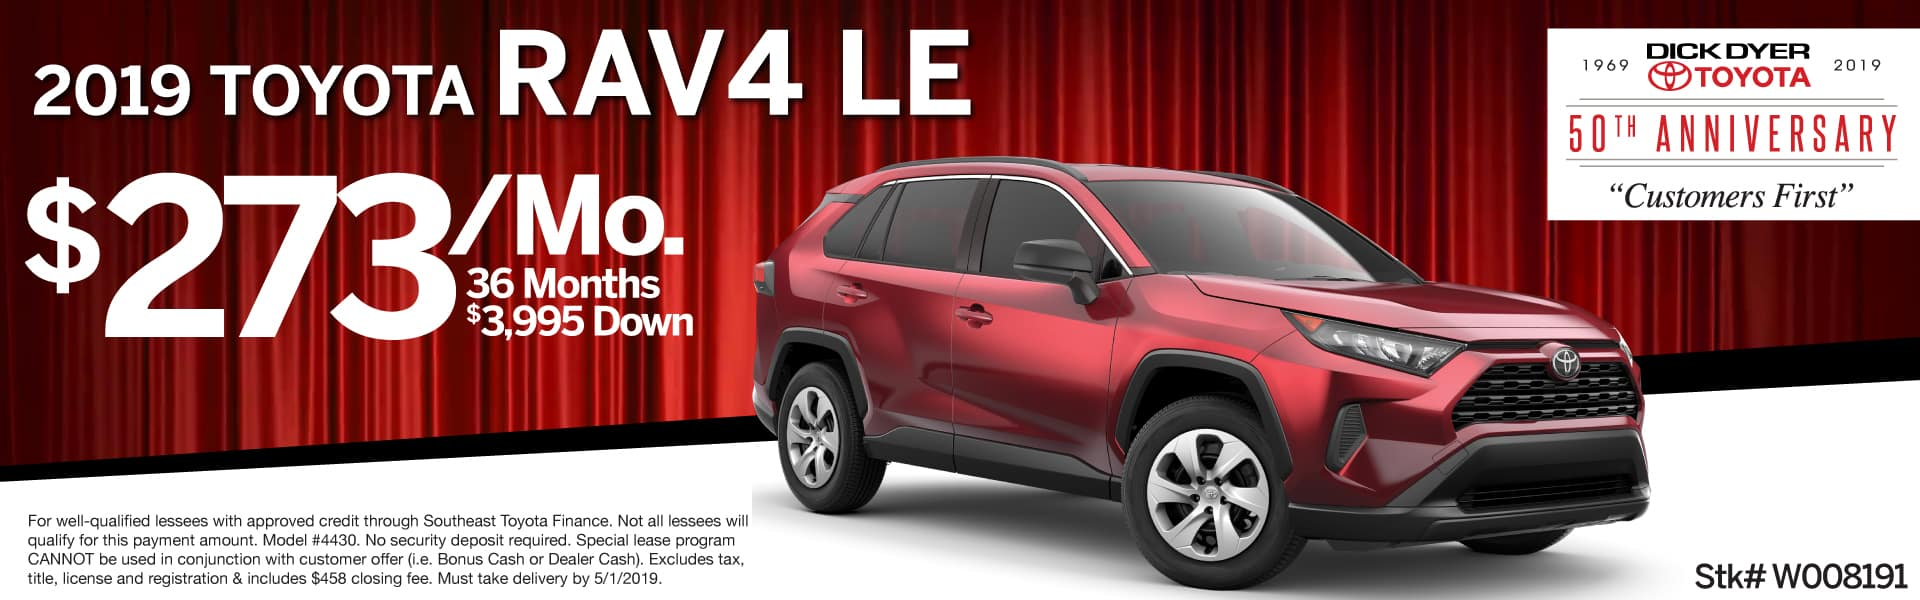 2019 Toyota Rav4 Columbia Lease